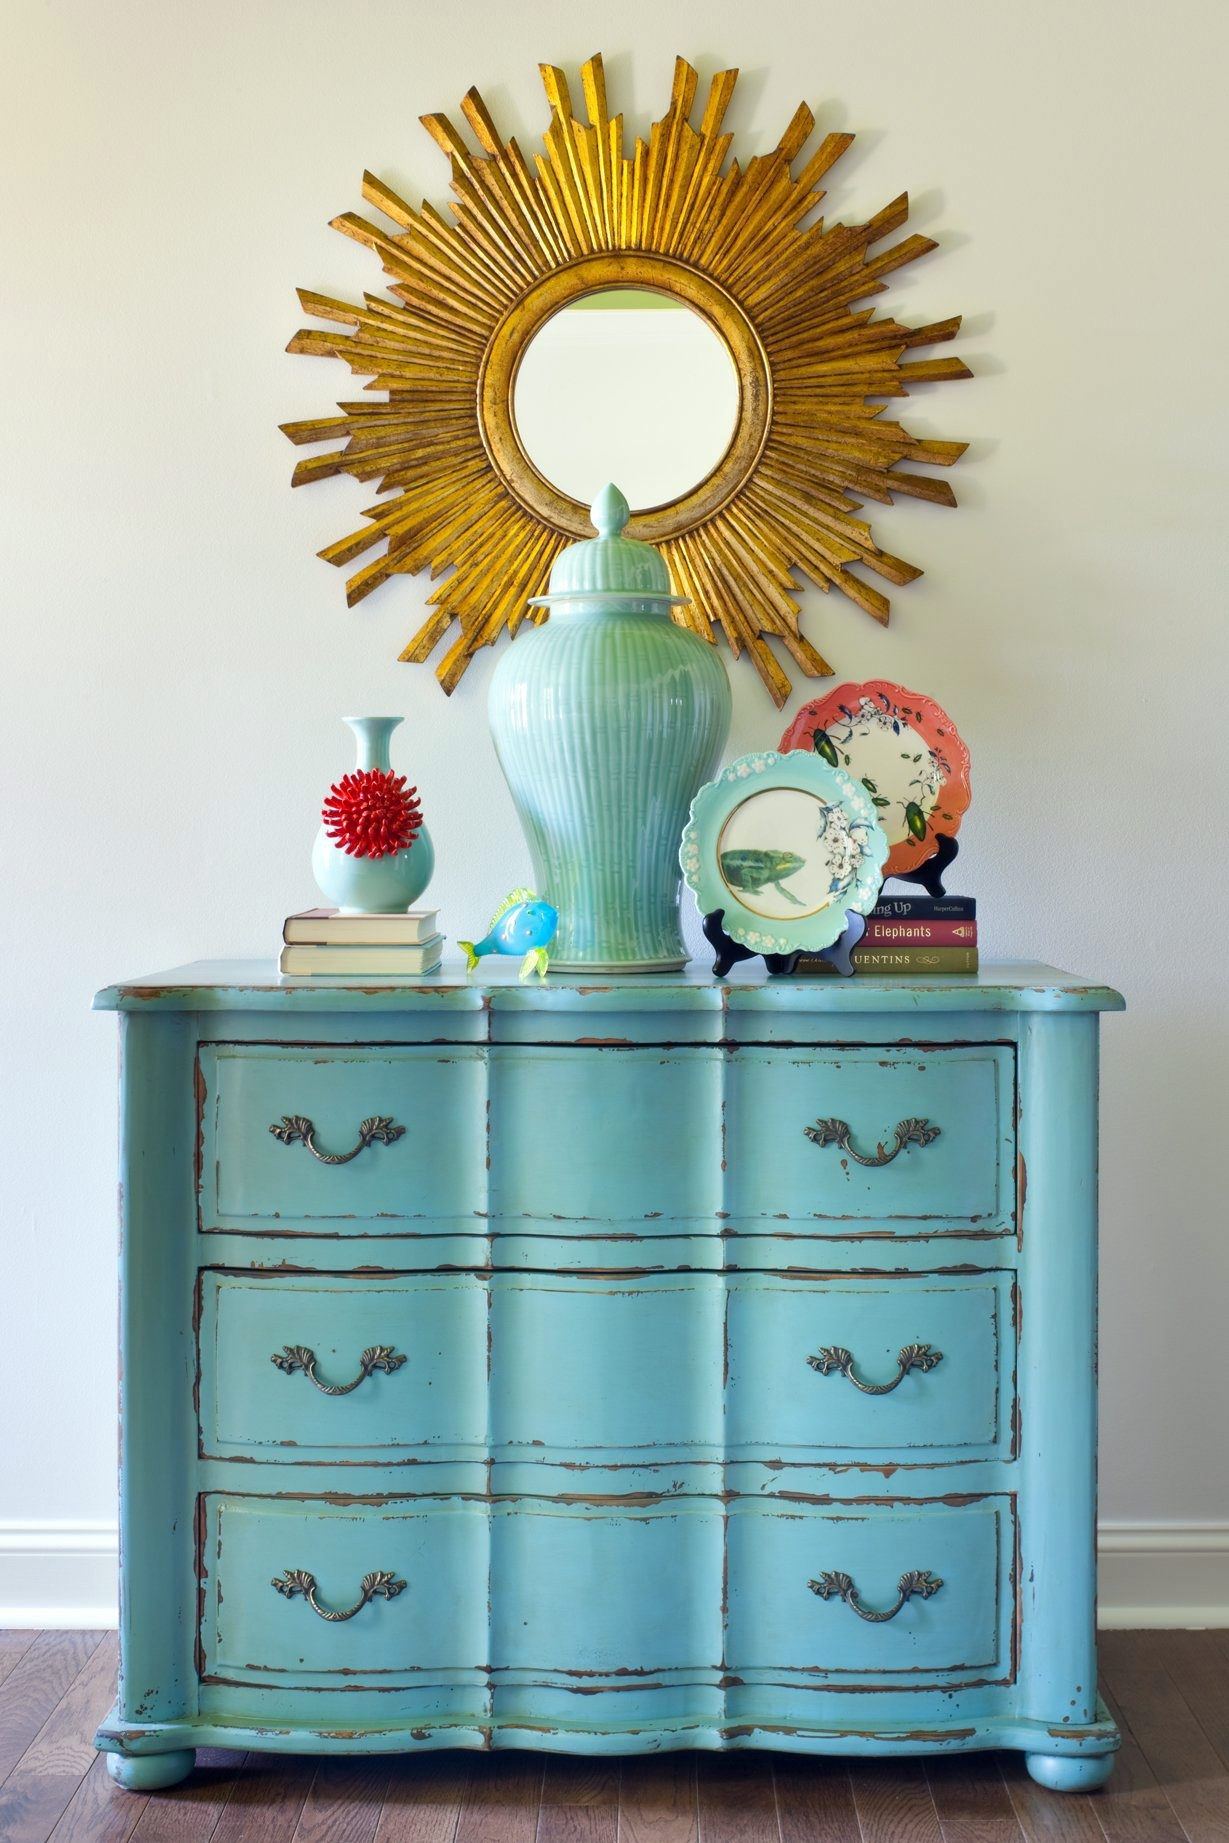 Pair a regal mirror with a rustic chest of drawers for an updated look.